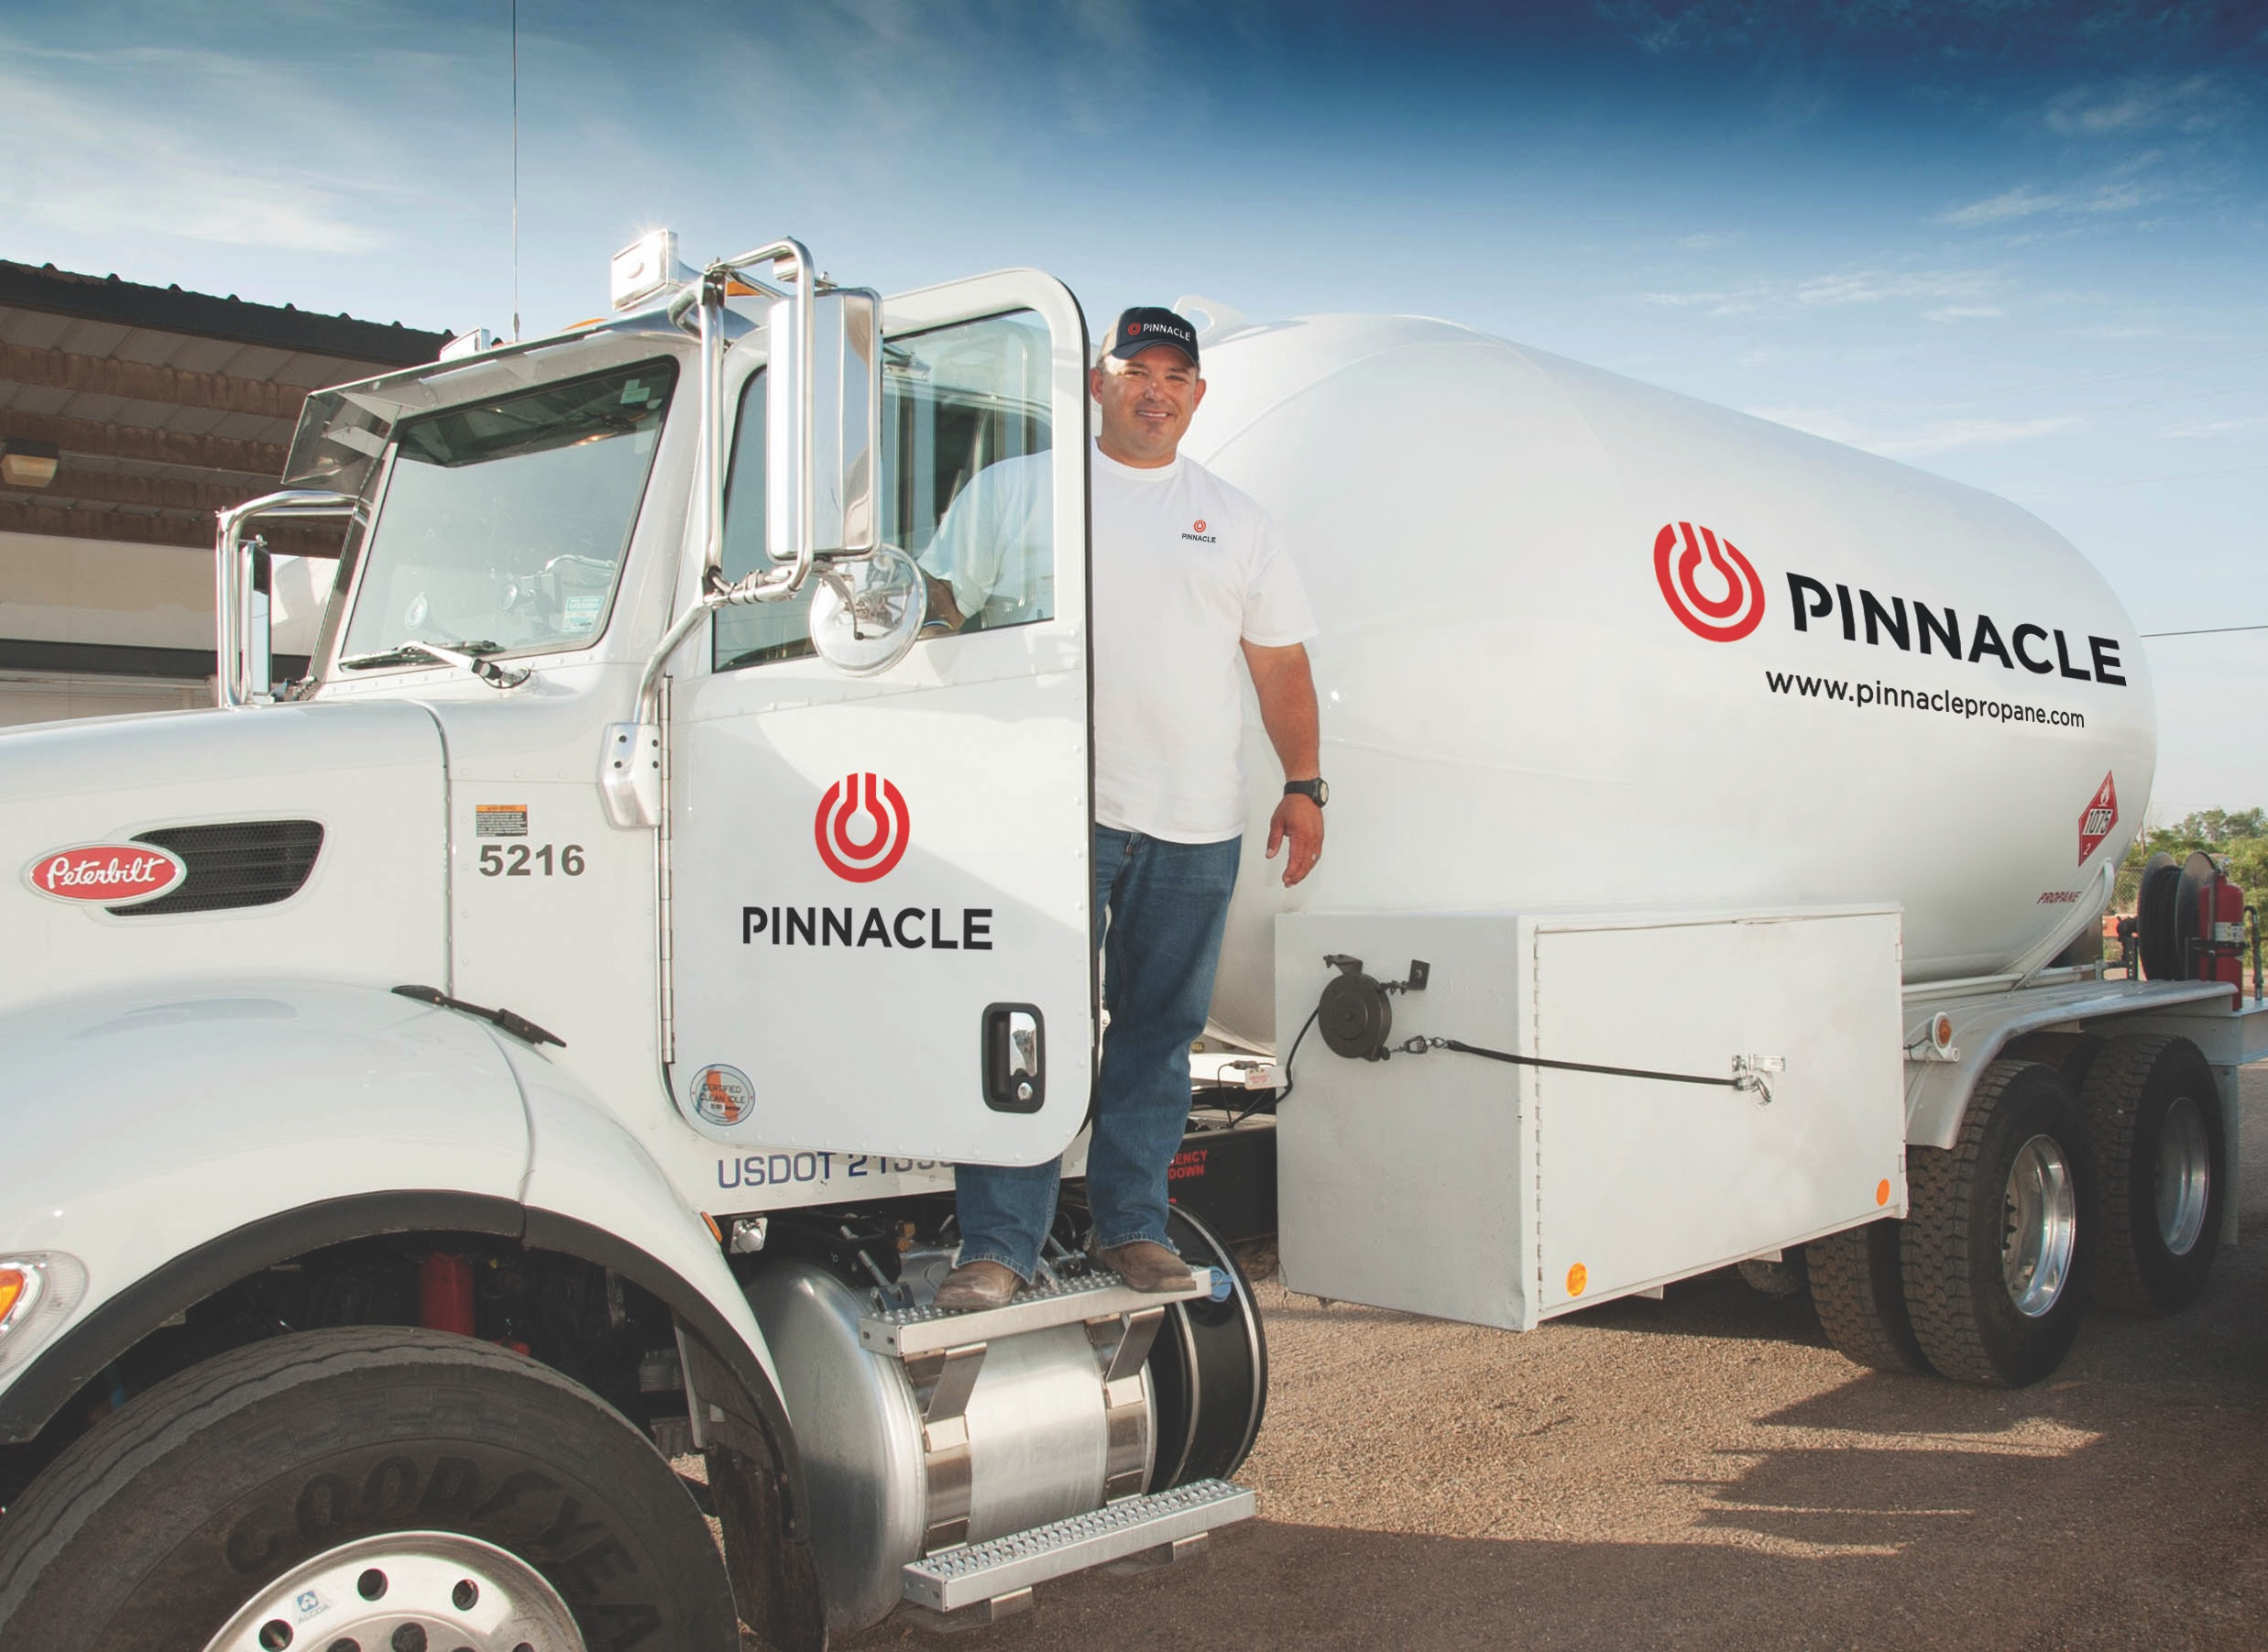 Smiling man wearing baseball hat standing in the door of a propane bobtail truck